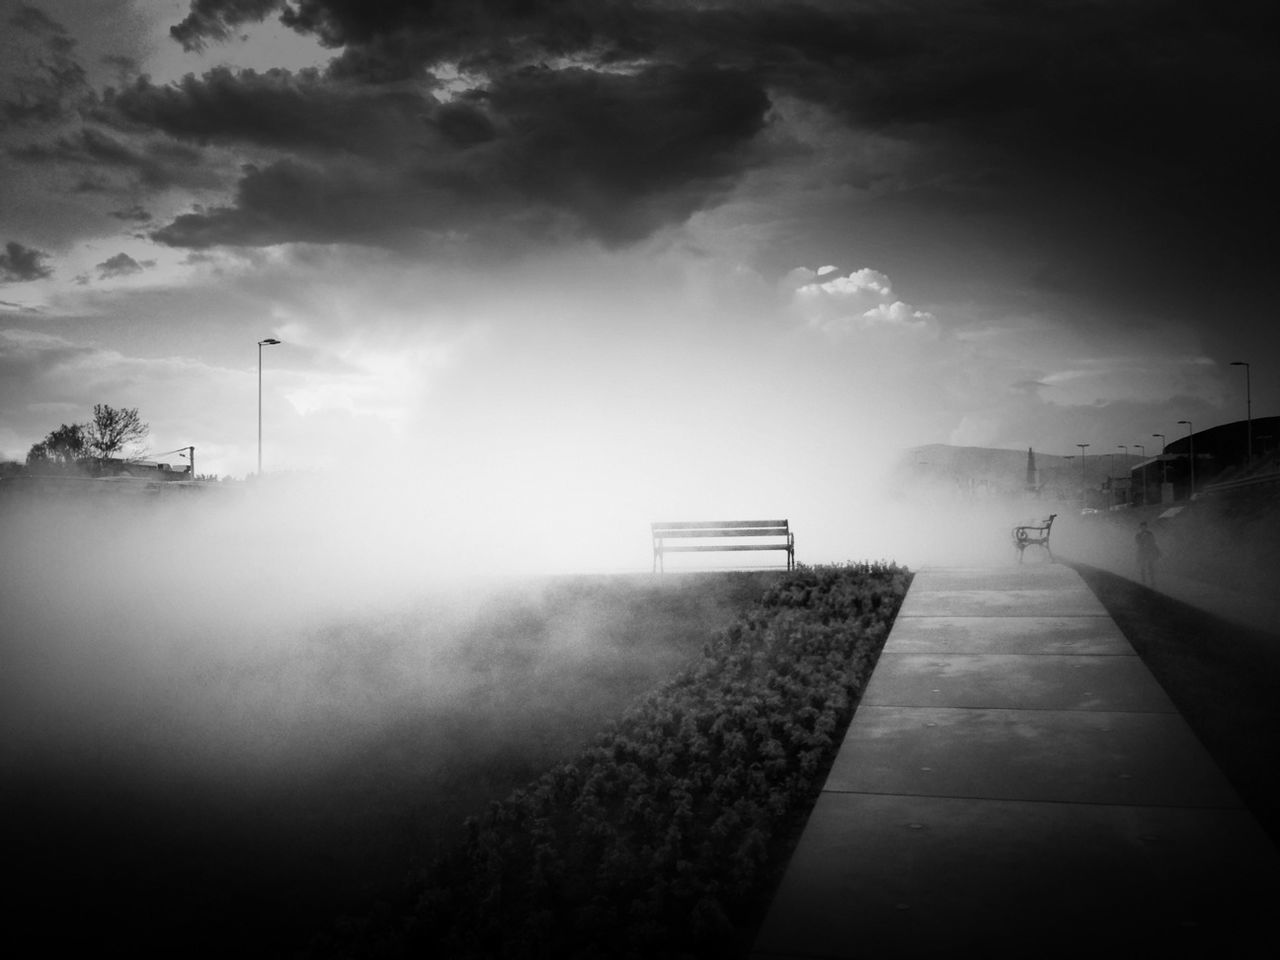 weather, sky, fog, no people, storm cloud, nature, outdoors, day